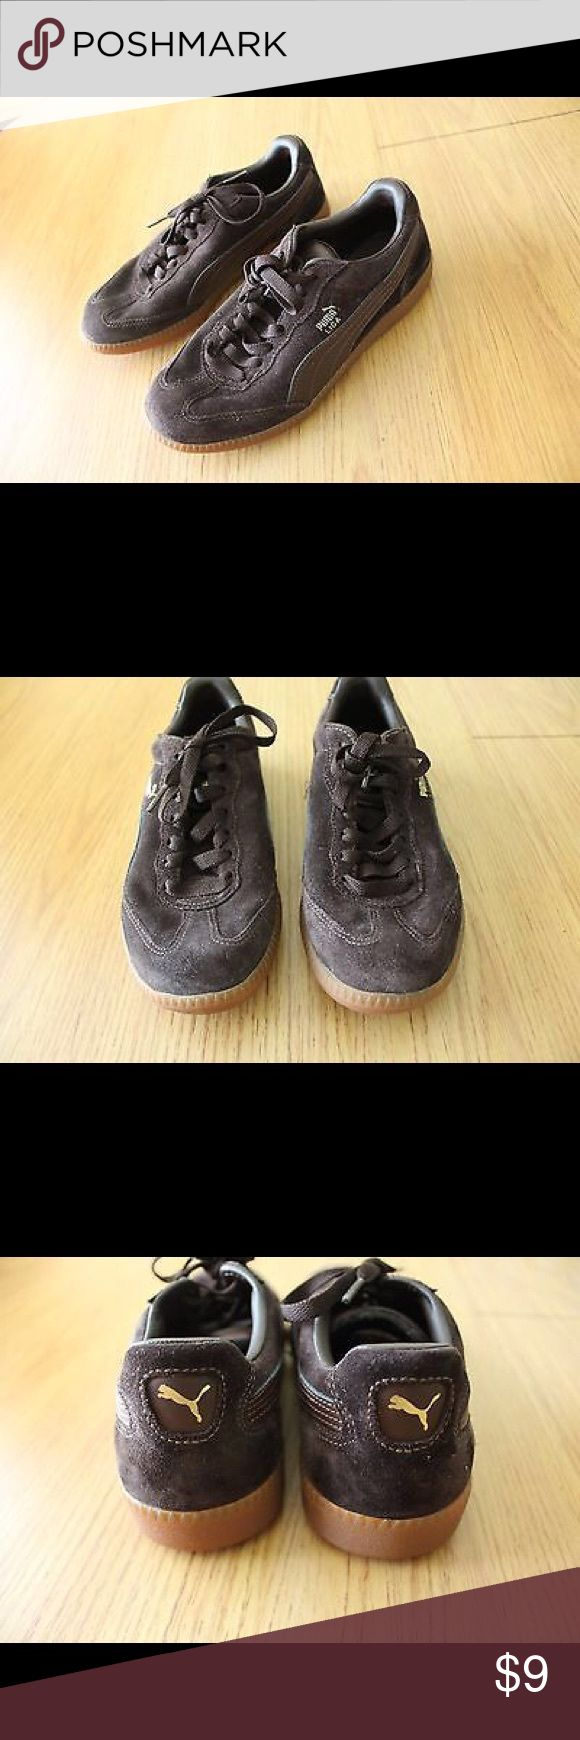 """Puma Liga Brown Suede Mens Trainers Size 5 USA Puma Liga Brown Suede Mens Trainers Size 5 USA 37 EUR - 352198 03. Shoes measure 10"""" heel to toe 3 3/4"""" widest part bottom. See photos Puma Shoes Athletic Shoes"""